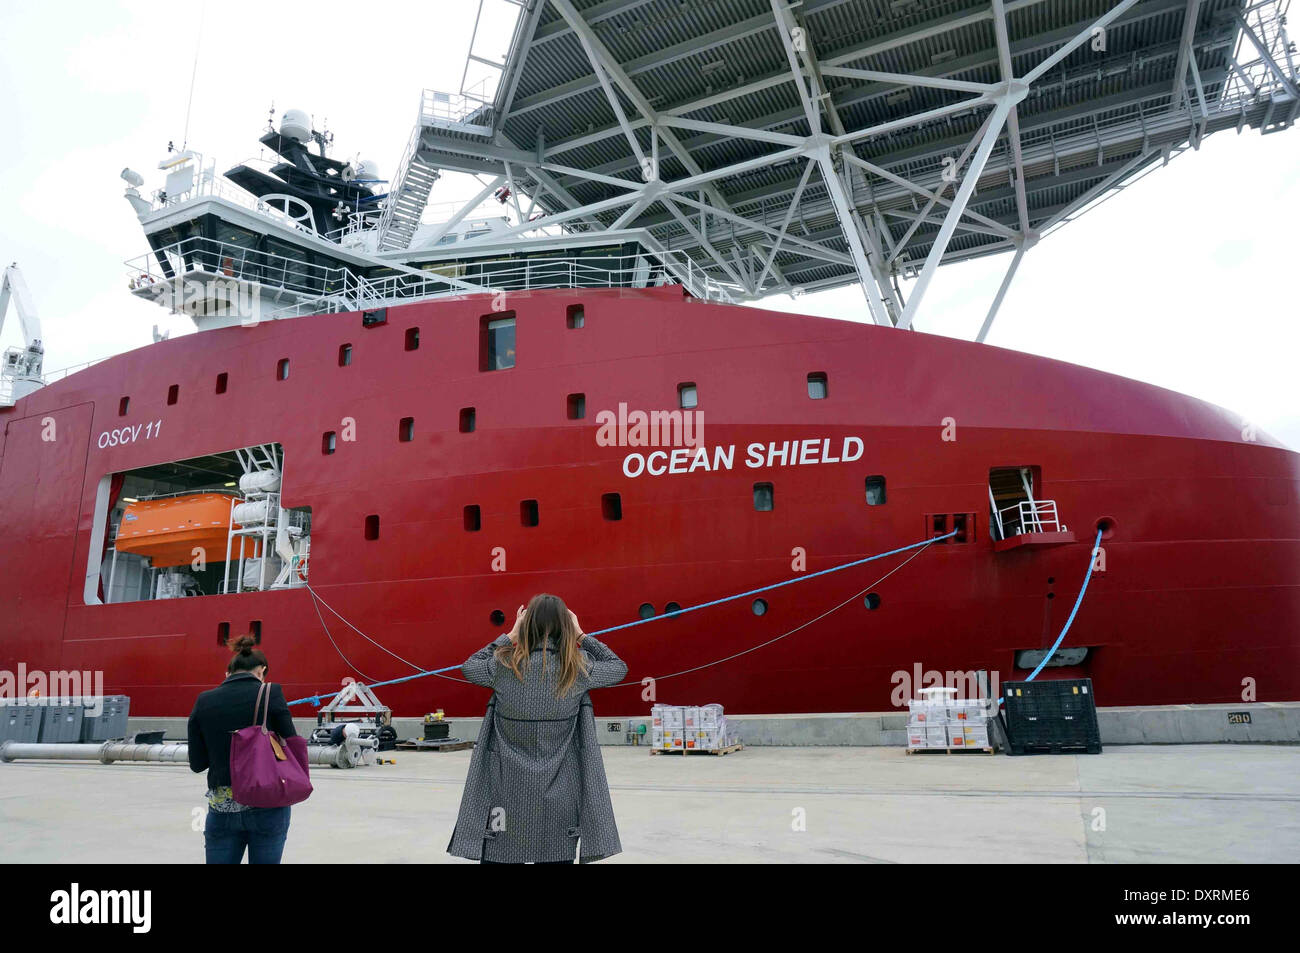 Perth, Australia . 30th Mar, 2014. A woman takes photo of Australian Defence Vessel Ocean Shield which is loaded with supplies and equipments before heading for a tasked area to locate the black box pinger of the missing Malaysia Airlines Flight MH370, at HMAS Stirling naval base near Perth, Australia, March 30, 2014. Credit:  Xinhua/Alamy Live News - Stock Image